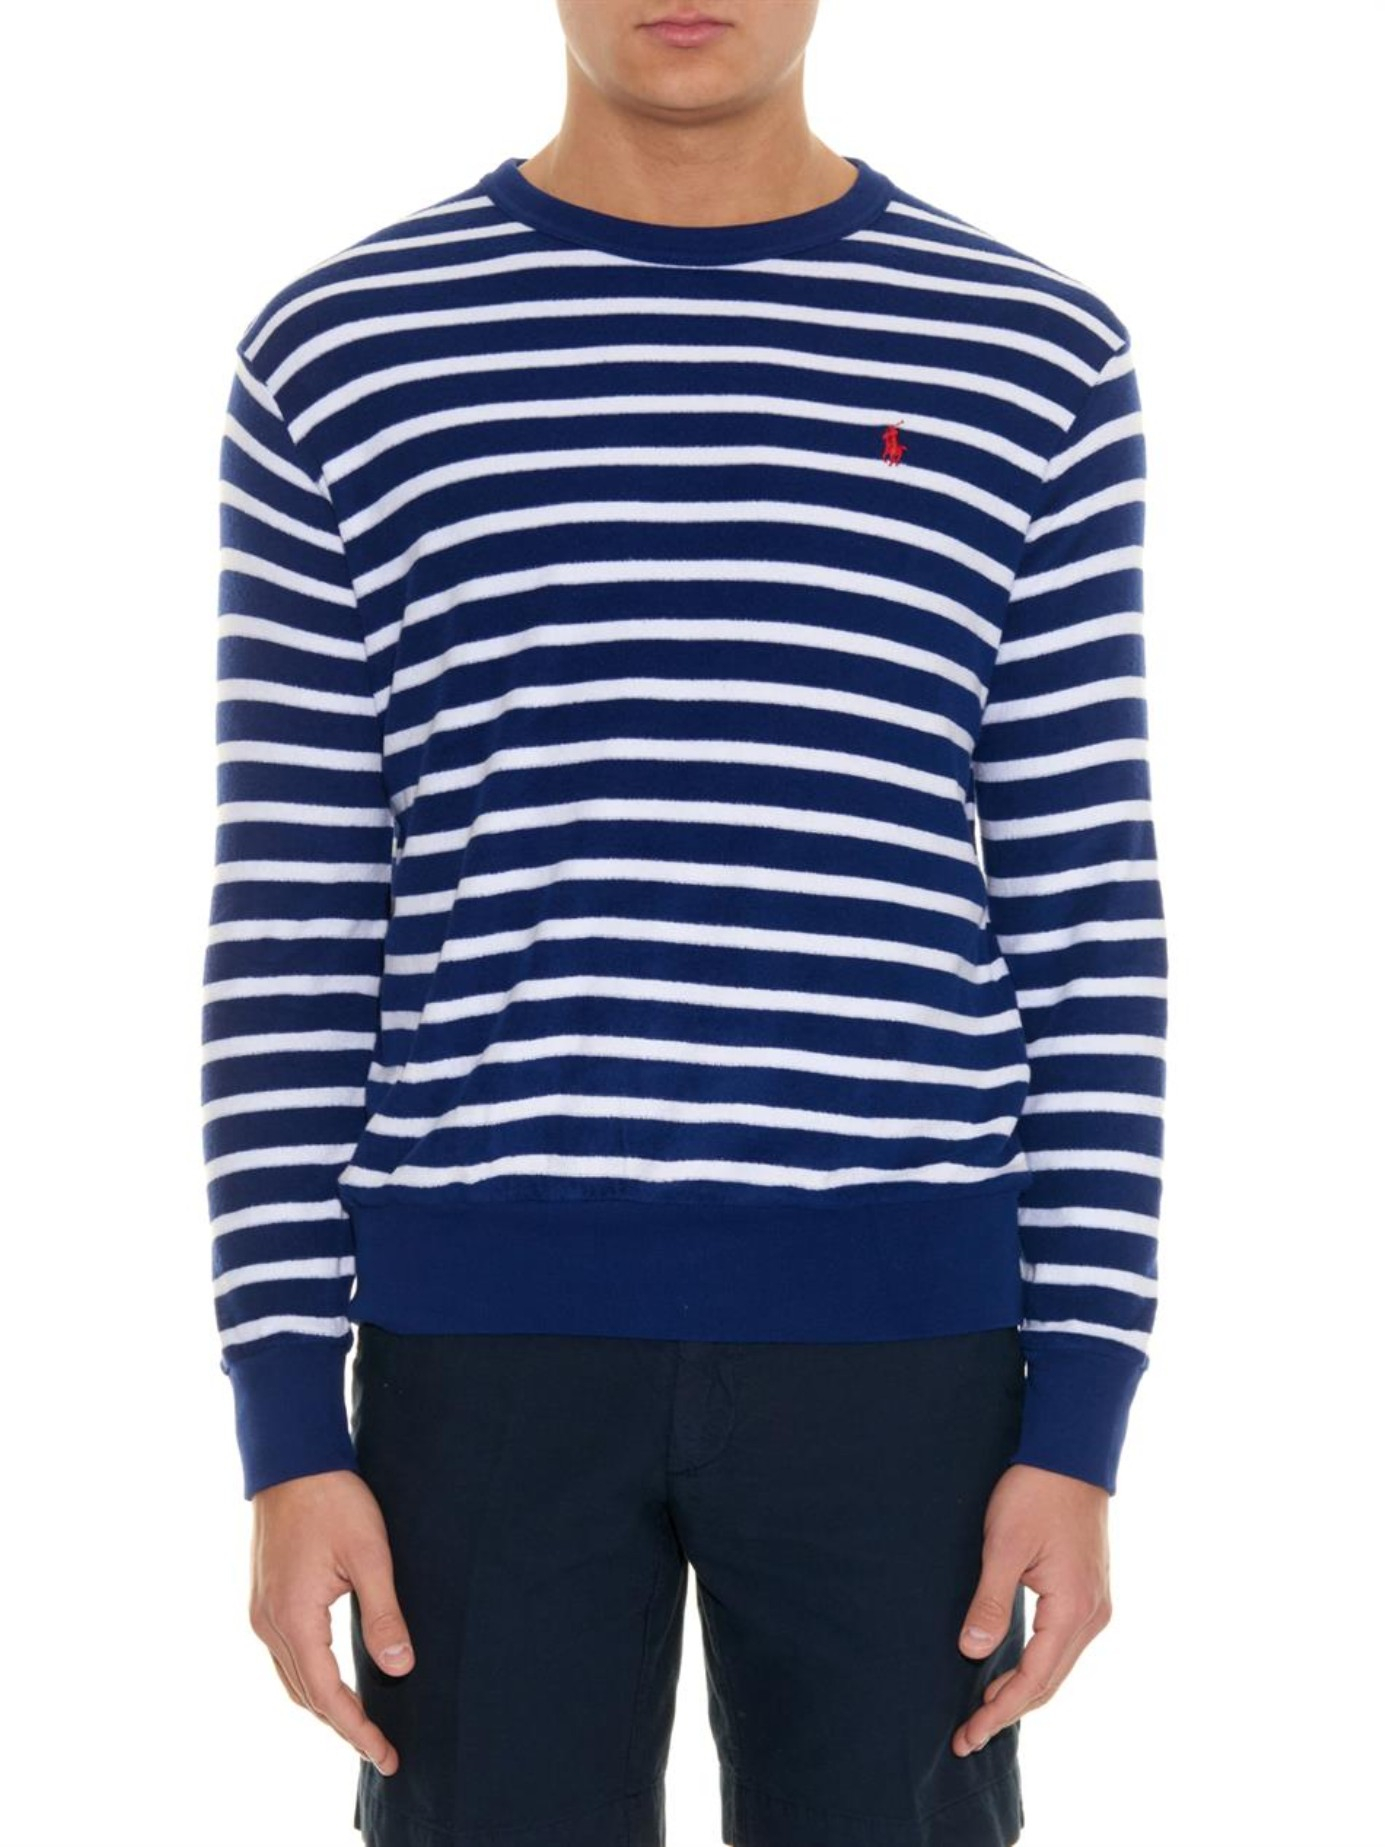 Lyst polo ralph lauren striped terry towelling long for Xlt long sleeve polo shirts